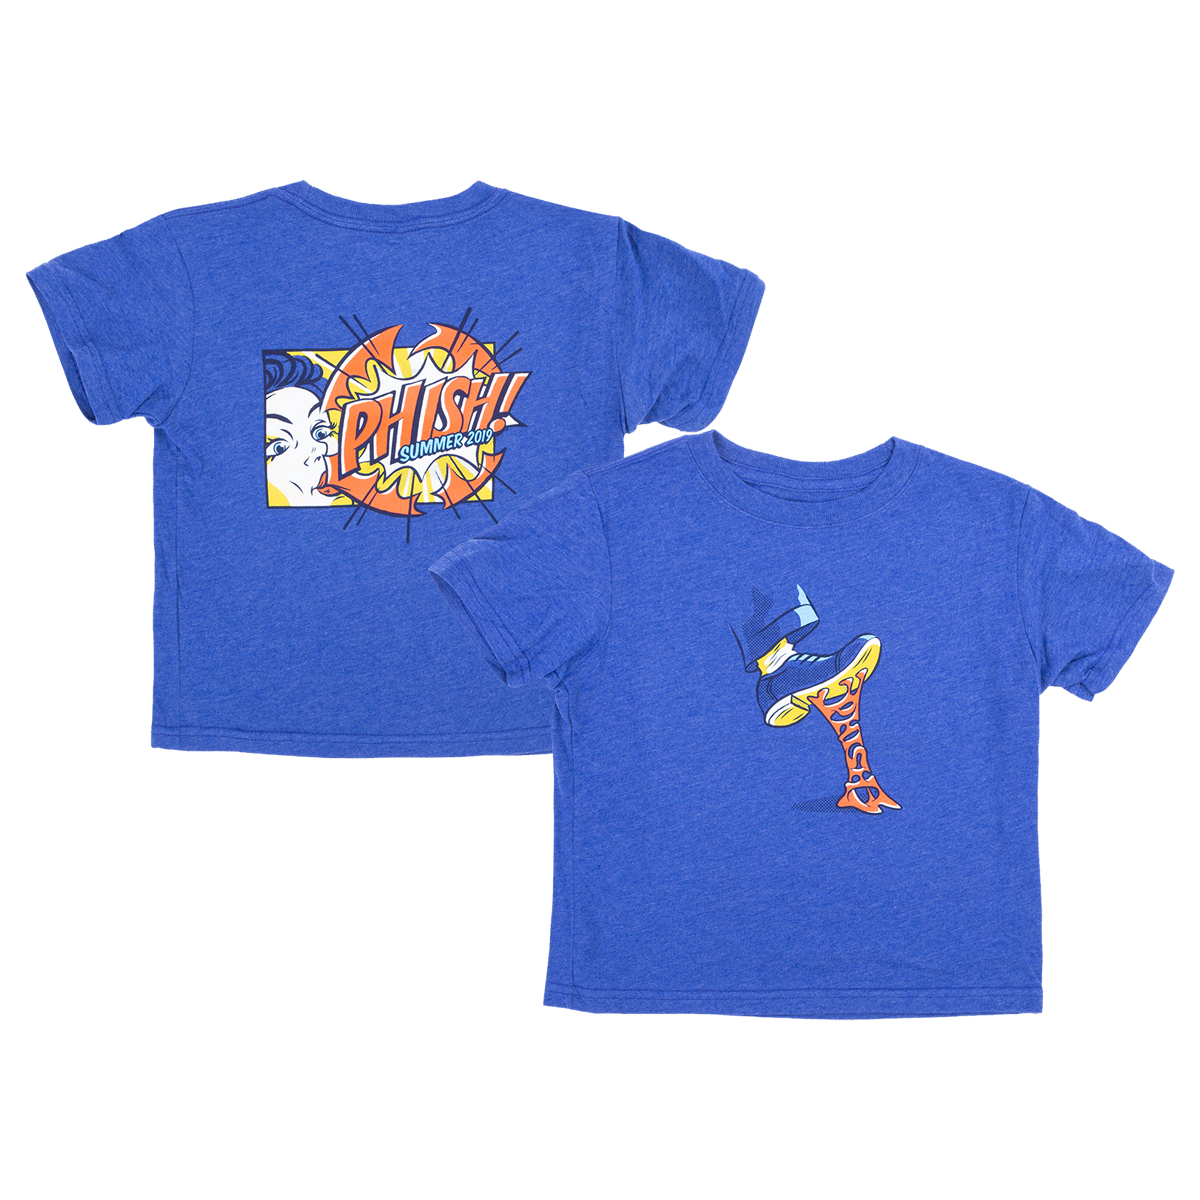 2019 Summer Tour Bubble Pop Toddler T-shirt